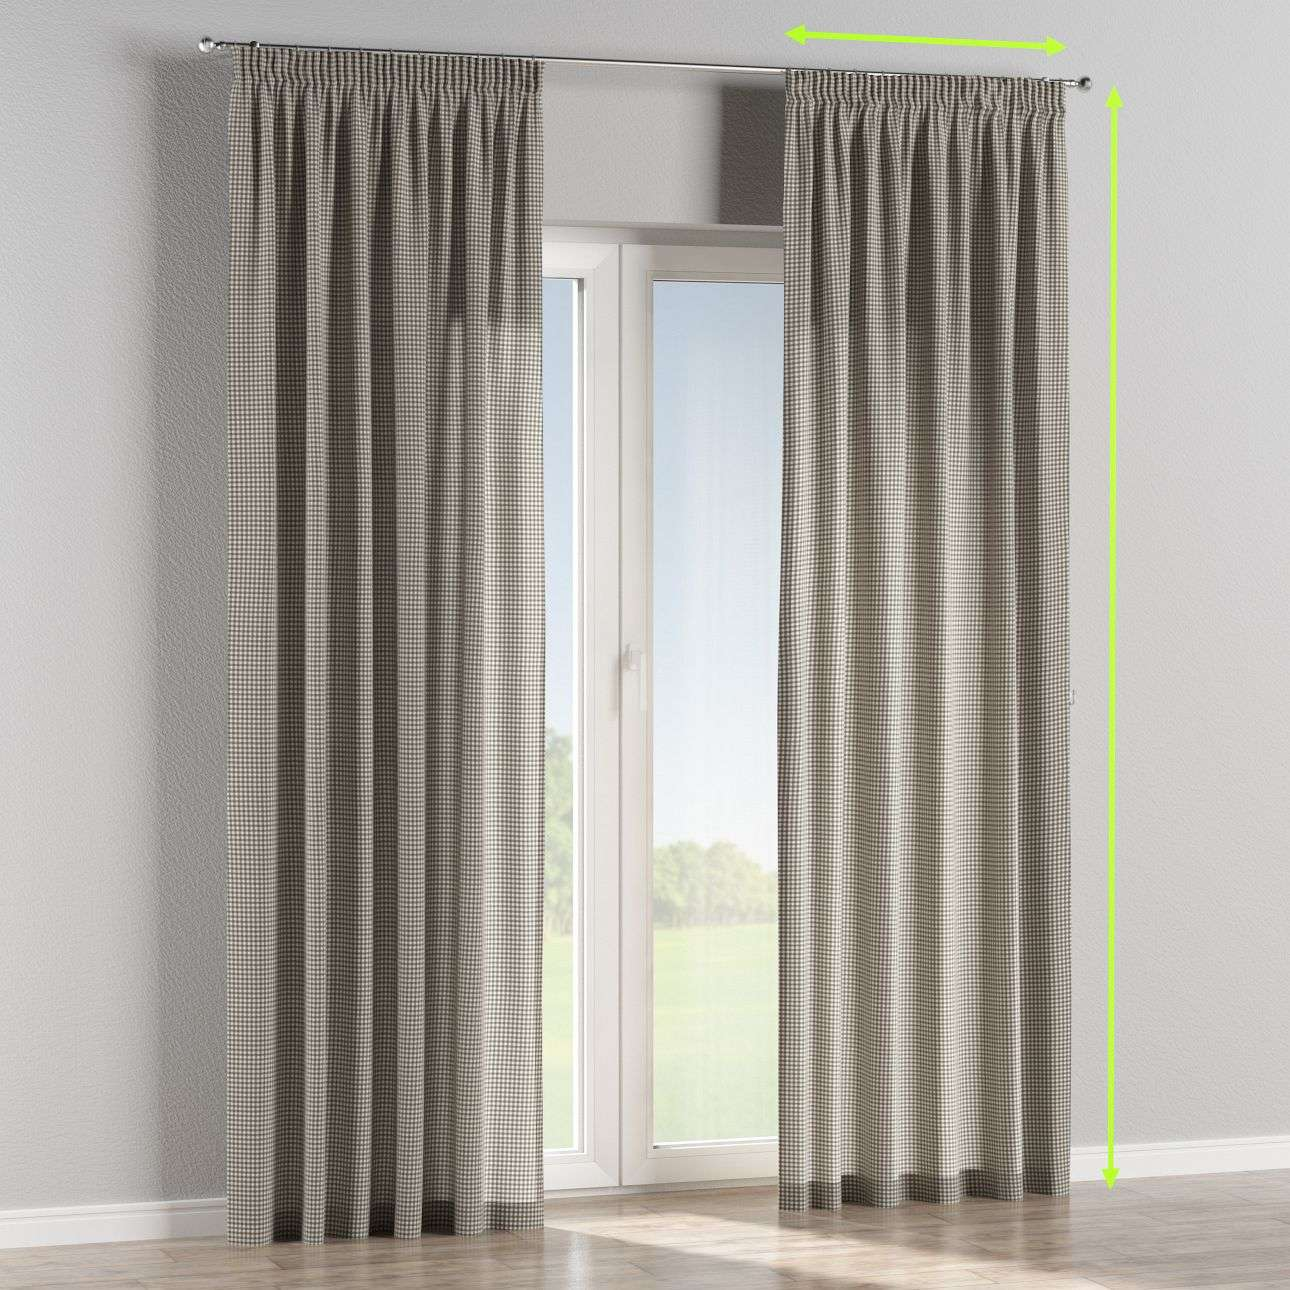 Pencil pleat lined curtains in collection Quadro, fabric: 136-10